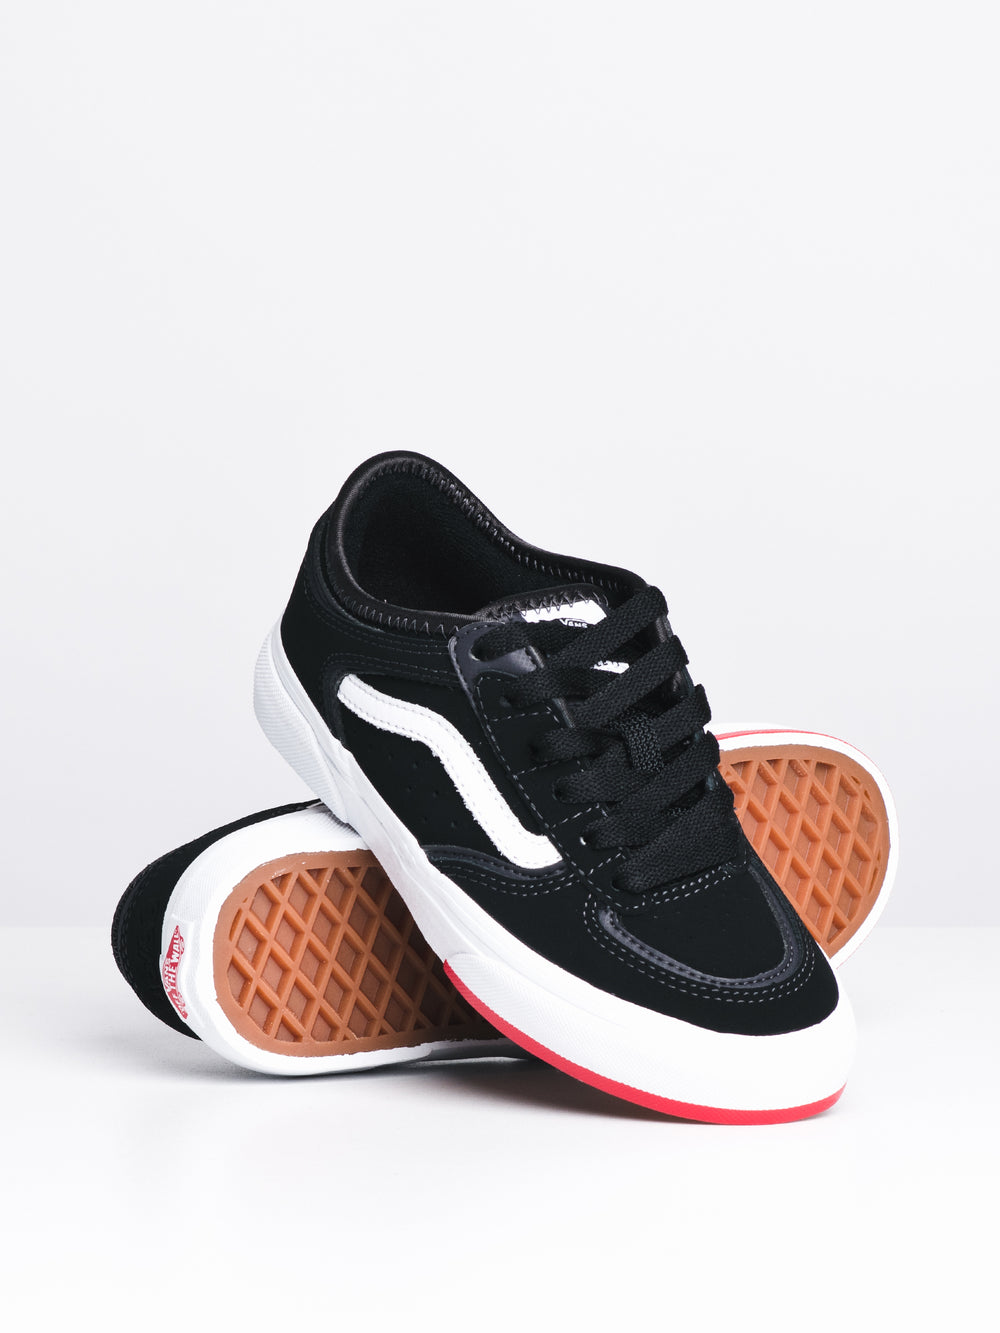 KIDS ROWLEY CLASSIC - BLACK/RED